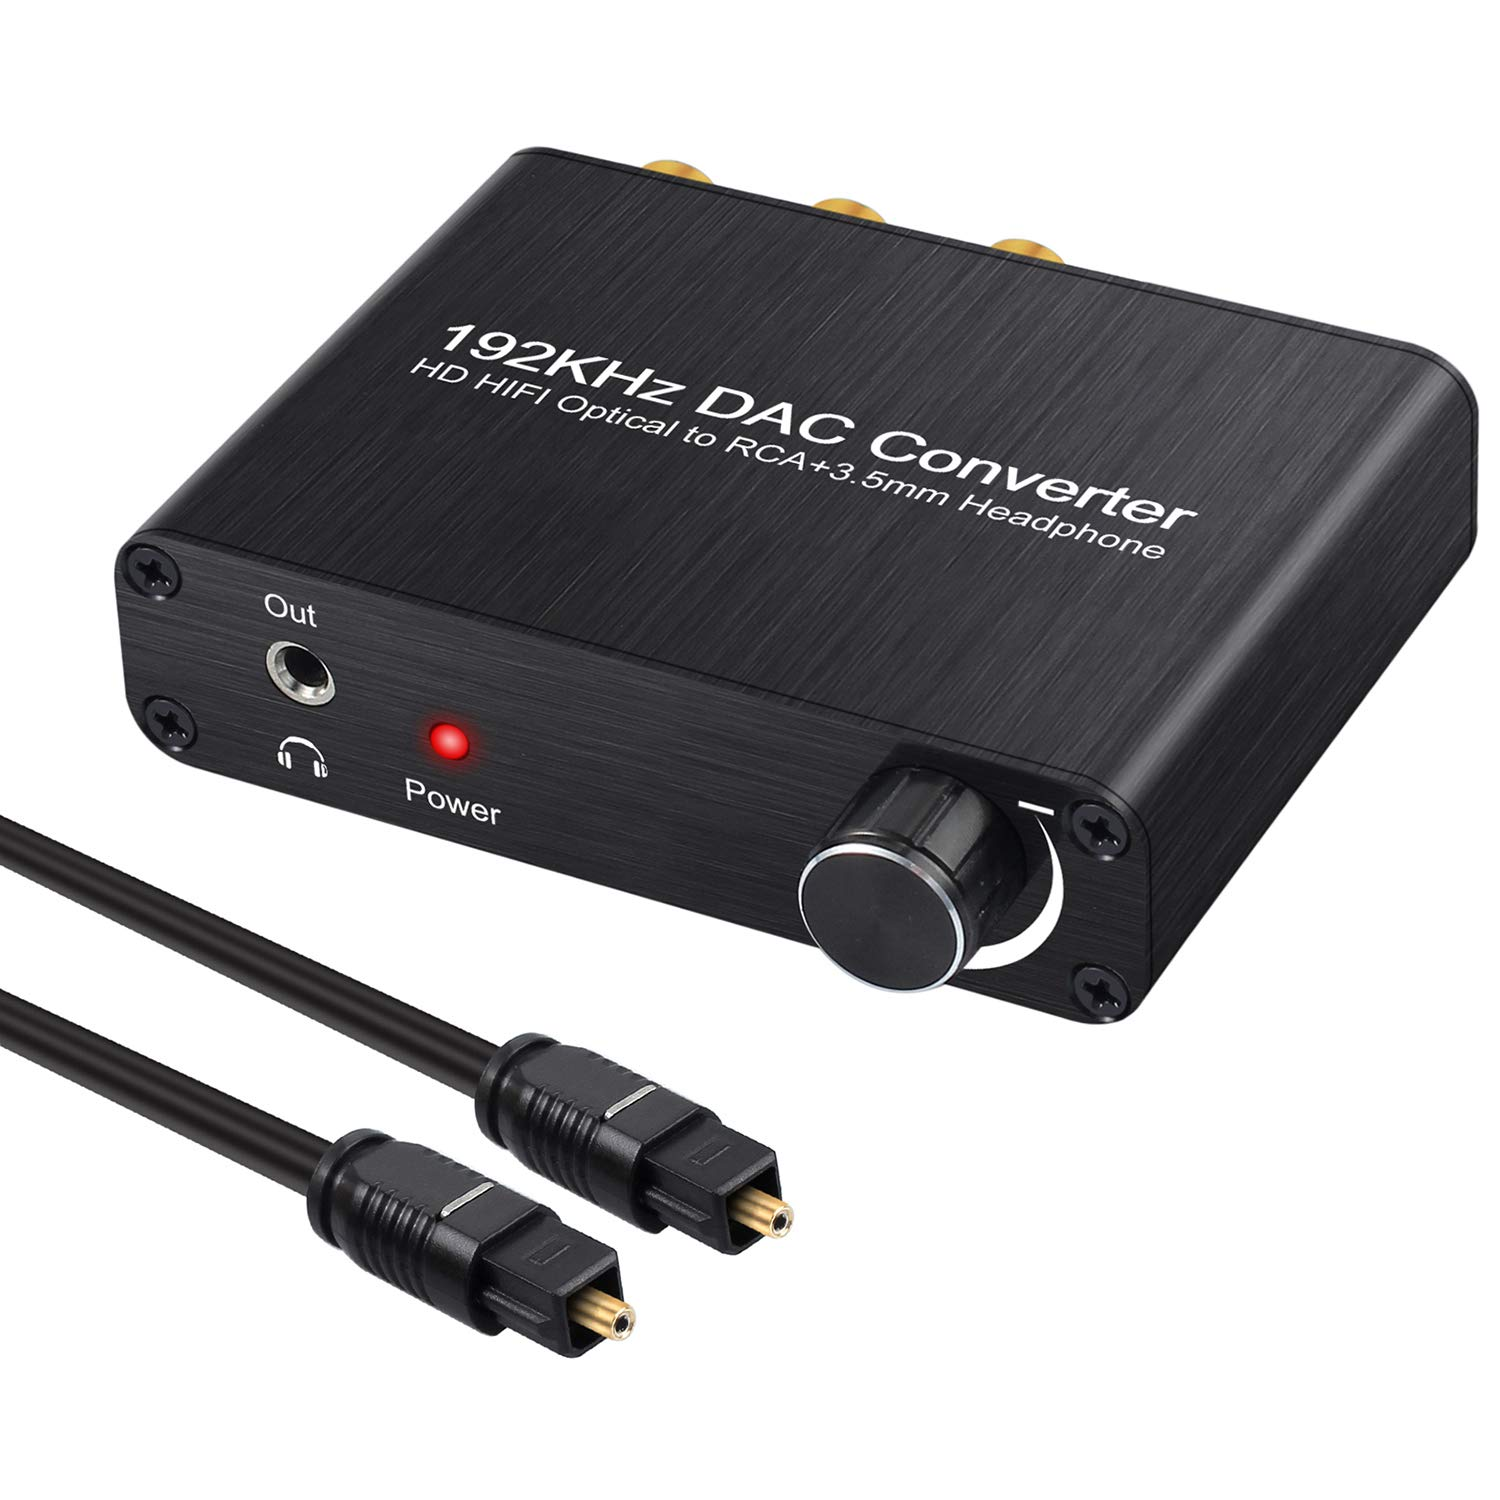 Neoteck 192kHz Digital to Analog Audio Converter with Volume Knob Support DTS/Dolby AC3 5.1CH Digital SPDIF Coaxial Toslink to Analog Stereo Left/Right RCA + 3.5mm Jack Audio Converter